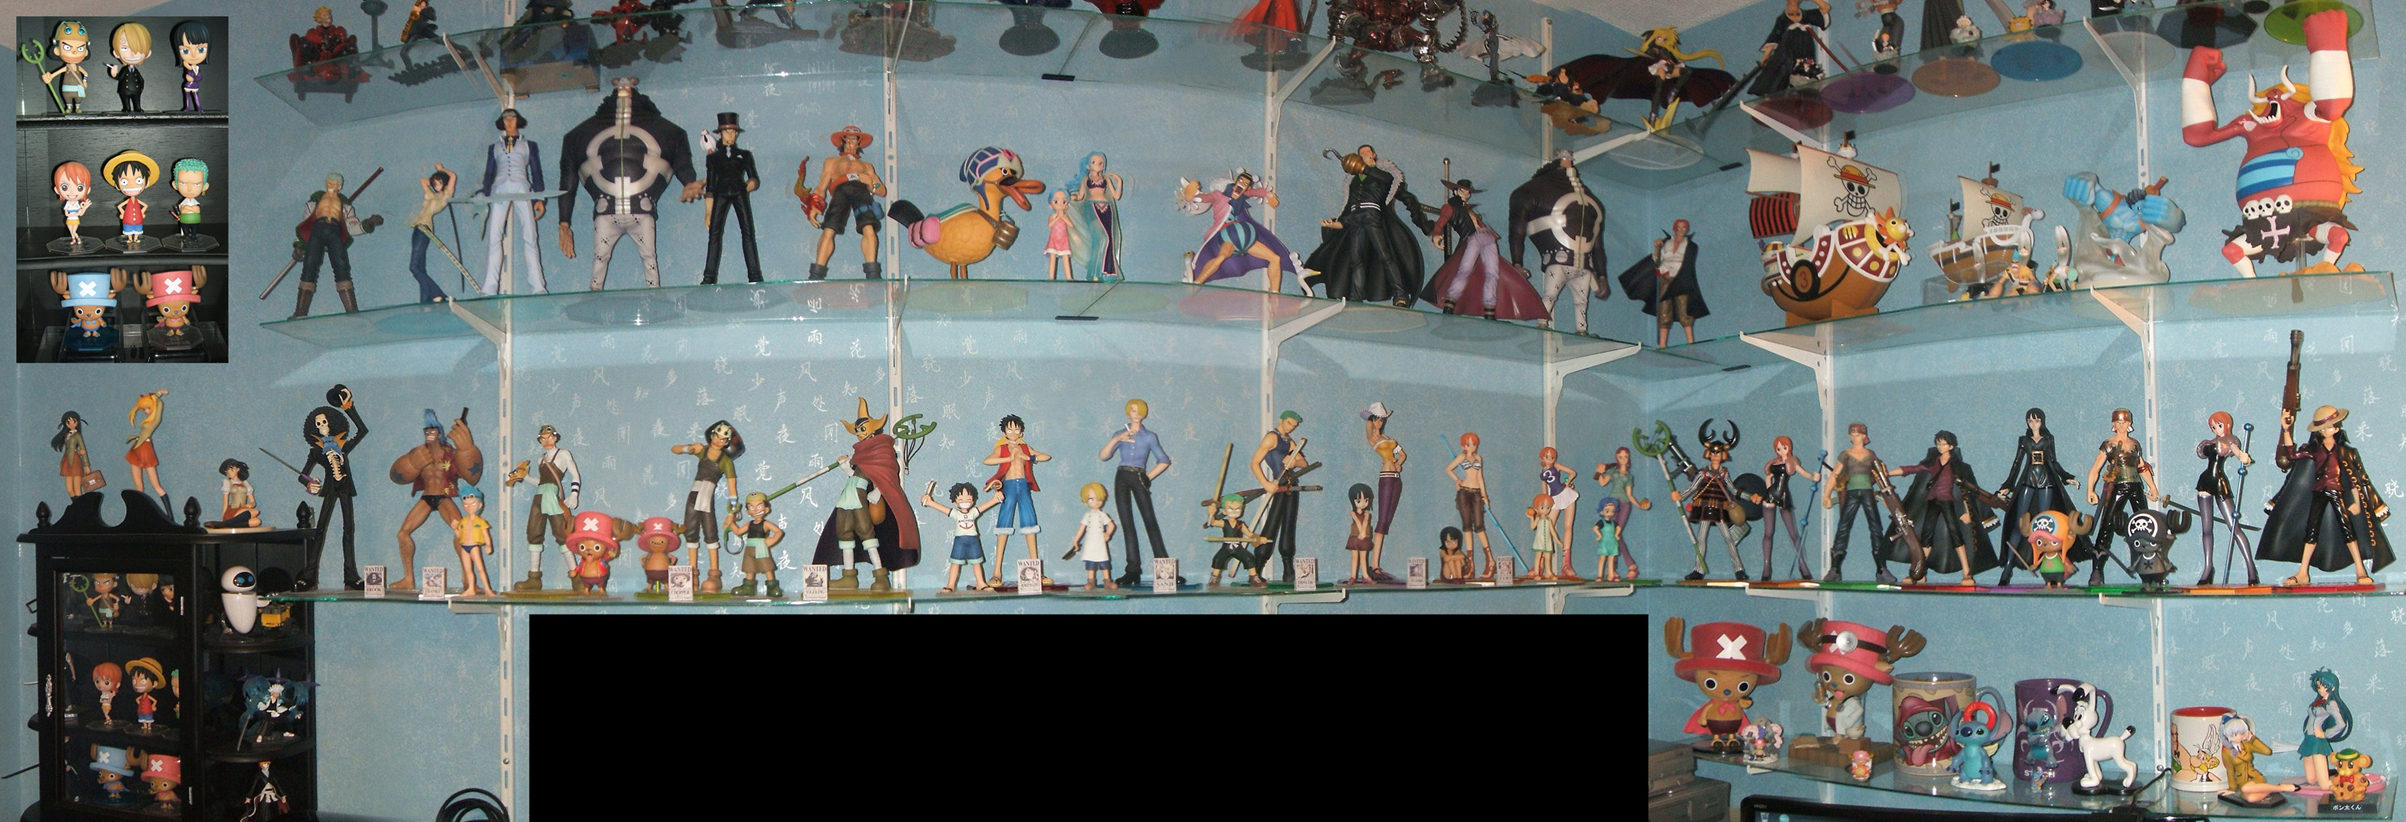 megahouse one_piece nico_robin kaiyodo good_smile_company banpresto nami usopp sanji monkey_d._luffy portgas_d._ace franky bome sogeking portrait_of_pirates roronoa_zoro rob_lucci brook hattori carue smoker tashigi tony_tony_chopper nightmare_luffy ichiban_kuji chidori_kaname full_metal_panic! sir_crocodile thousand_sunny aokiji oars soft_vinyl school_rumble tsukamoto_yakumo saitou_fumiki ajiken oda_eiichiro portrait_of_pirates_dx black_sabasu portrait_of_pirates_strong_edition tokunaga_hironori abe_takumi fukuda_takashi portrait_of_pirates_neo takashi_tamotsu red-haired_shanks organic atelier_sai mr.2_bon_kure juracule_mihawk bartholomew_kuma negative_hollow hiroki_ishiyama nefertari_vivi chopper_man teletha_testarossa tsukamoto_tenma mon-sieur_bome sawachika_eri going_merry ichiban_kuji_one_piece_thriller_bark_arc memo_stand full_metal_panic?_fumoffu sagara_sousuke ichiban_kuji_chopper